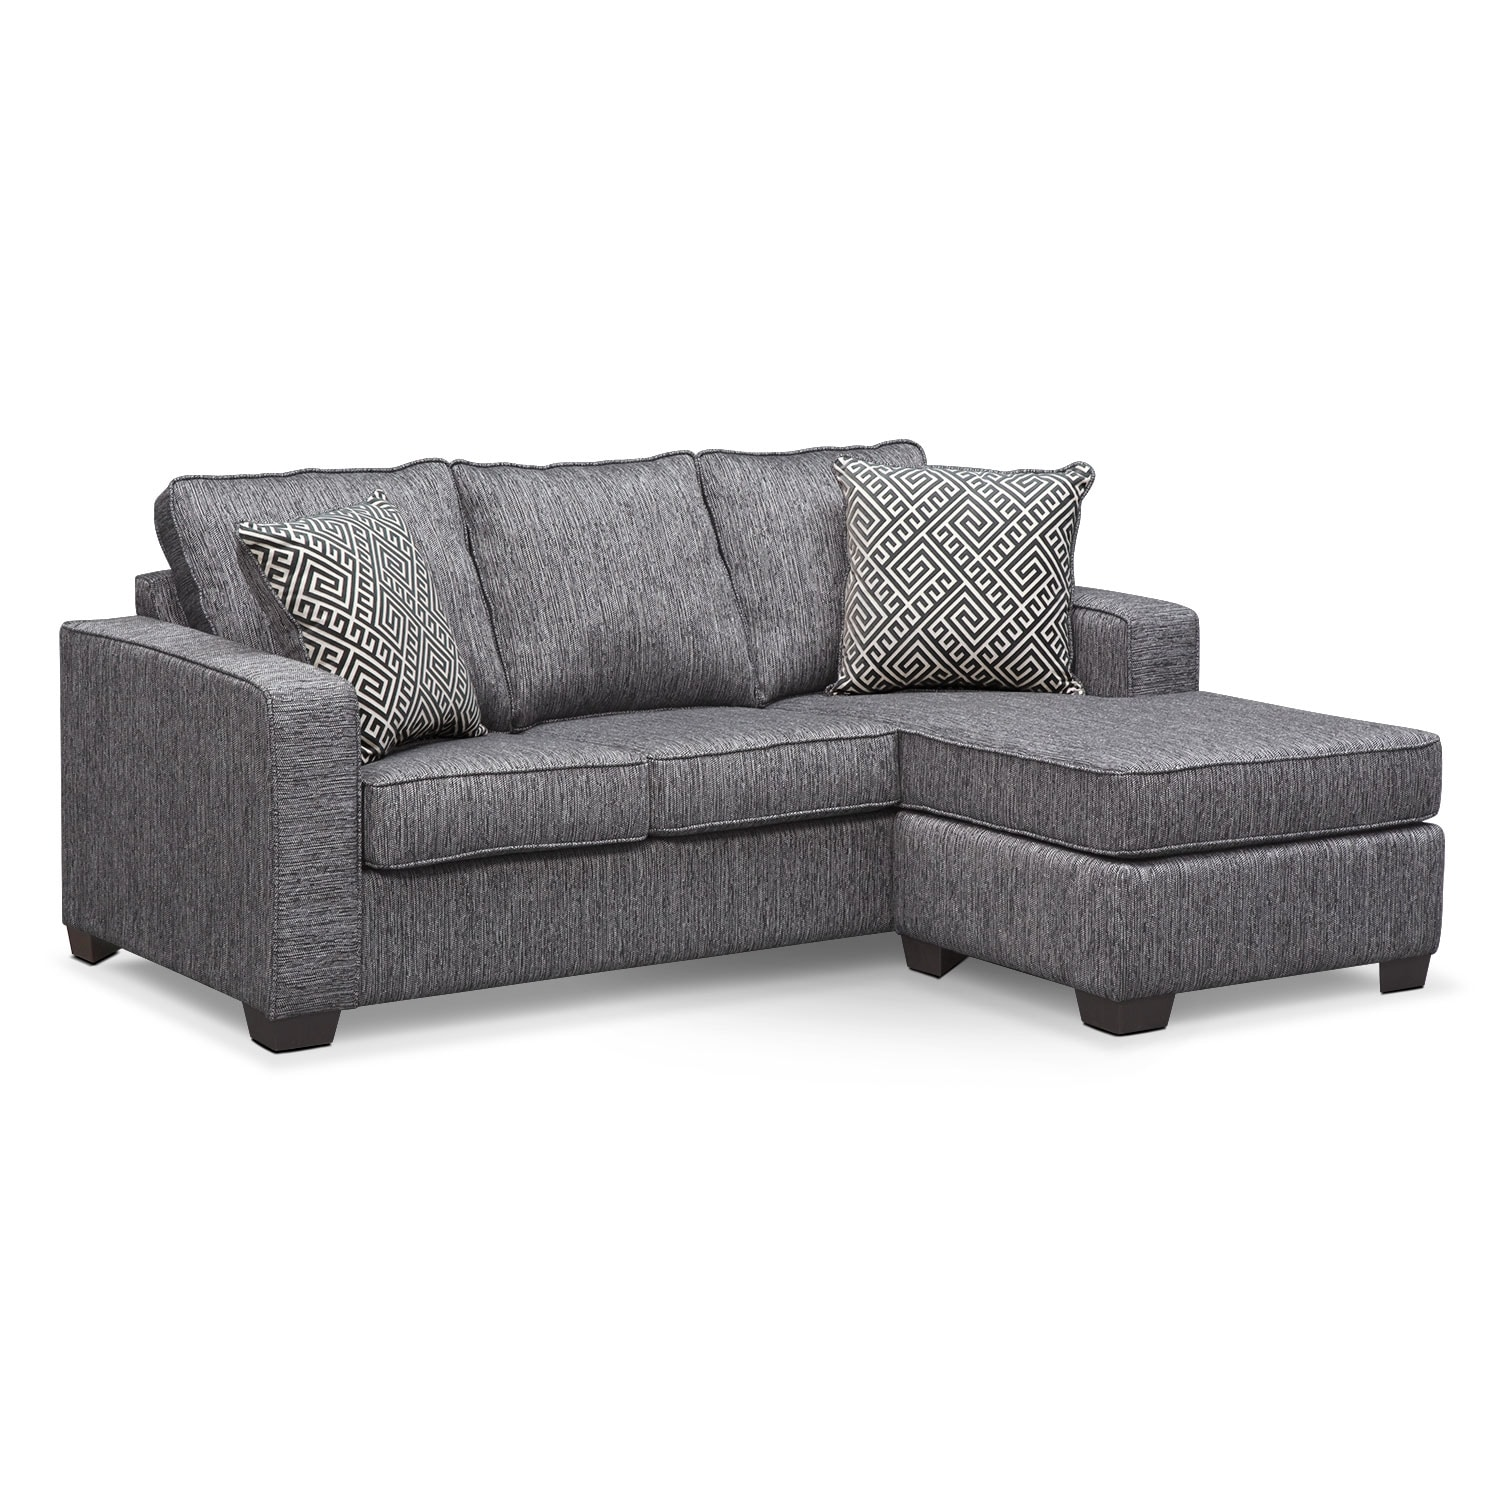 Sterling Memory Foam Sleeper Sofa with Chaise - Charcoal